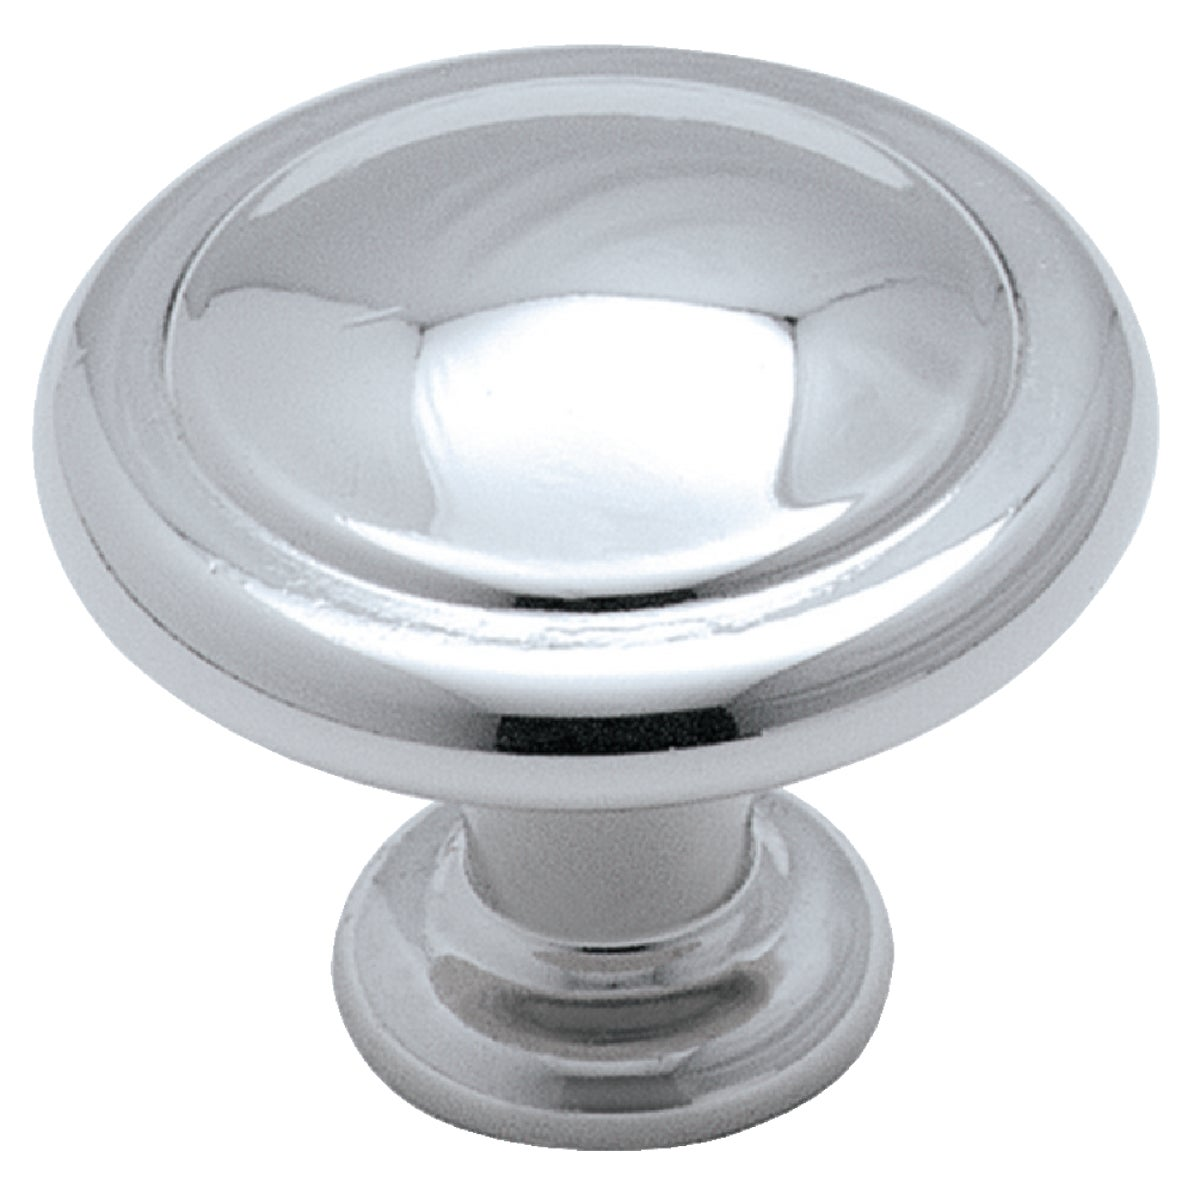 "1-1/4"" PC REFLECT KNOB - BP1387-26 by Amerock Corporation"